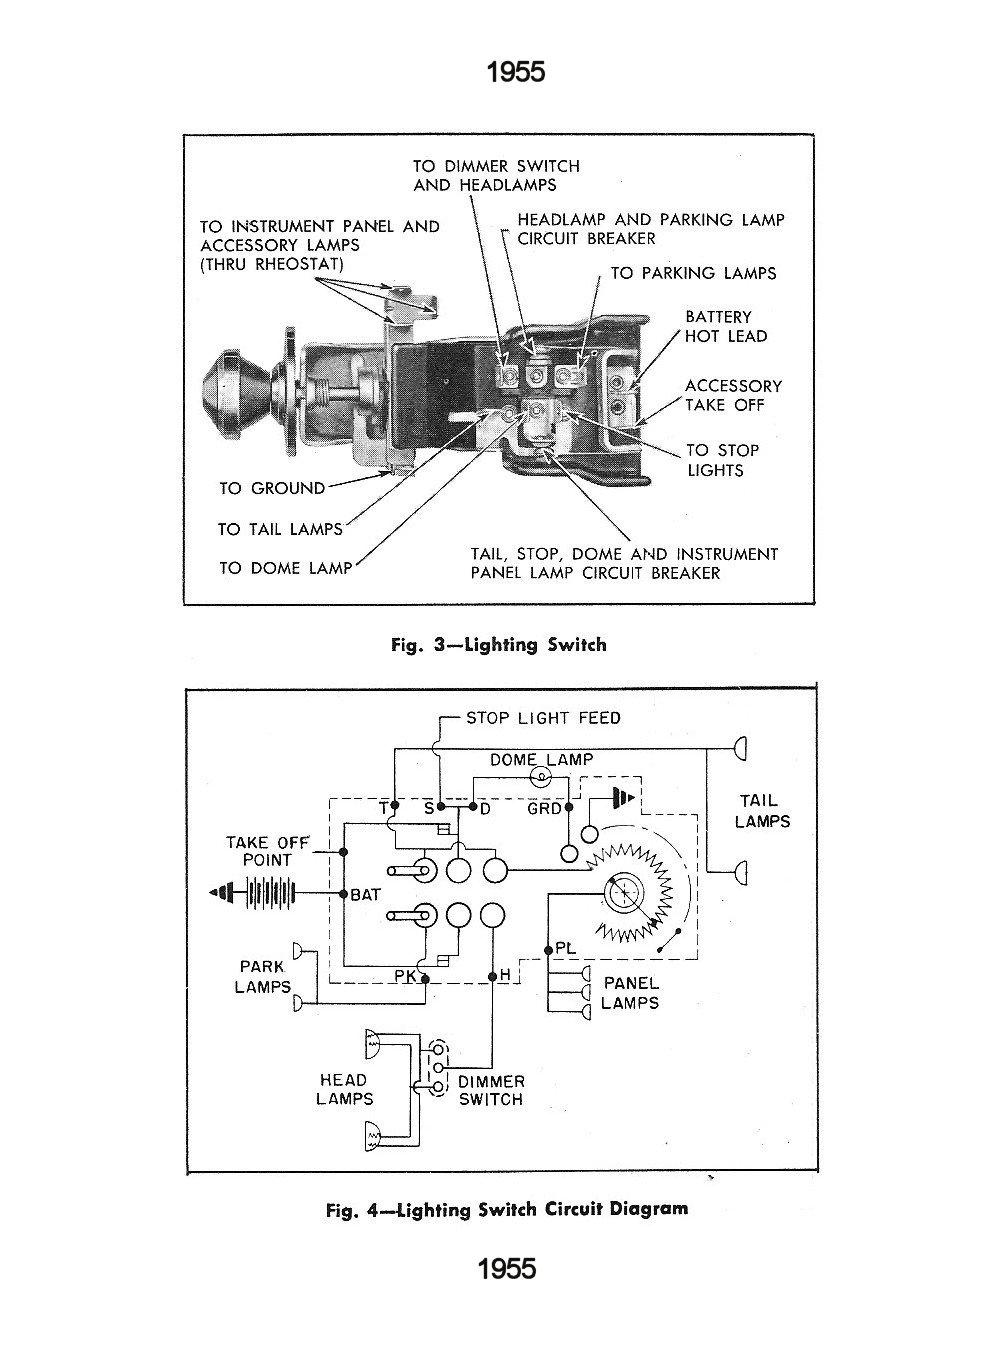 63 Chevy Headlight Switch Wiring Diagram | Manual E-Books - Chevy Headlight Switch Wiring Diagram